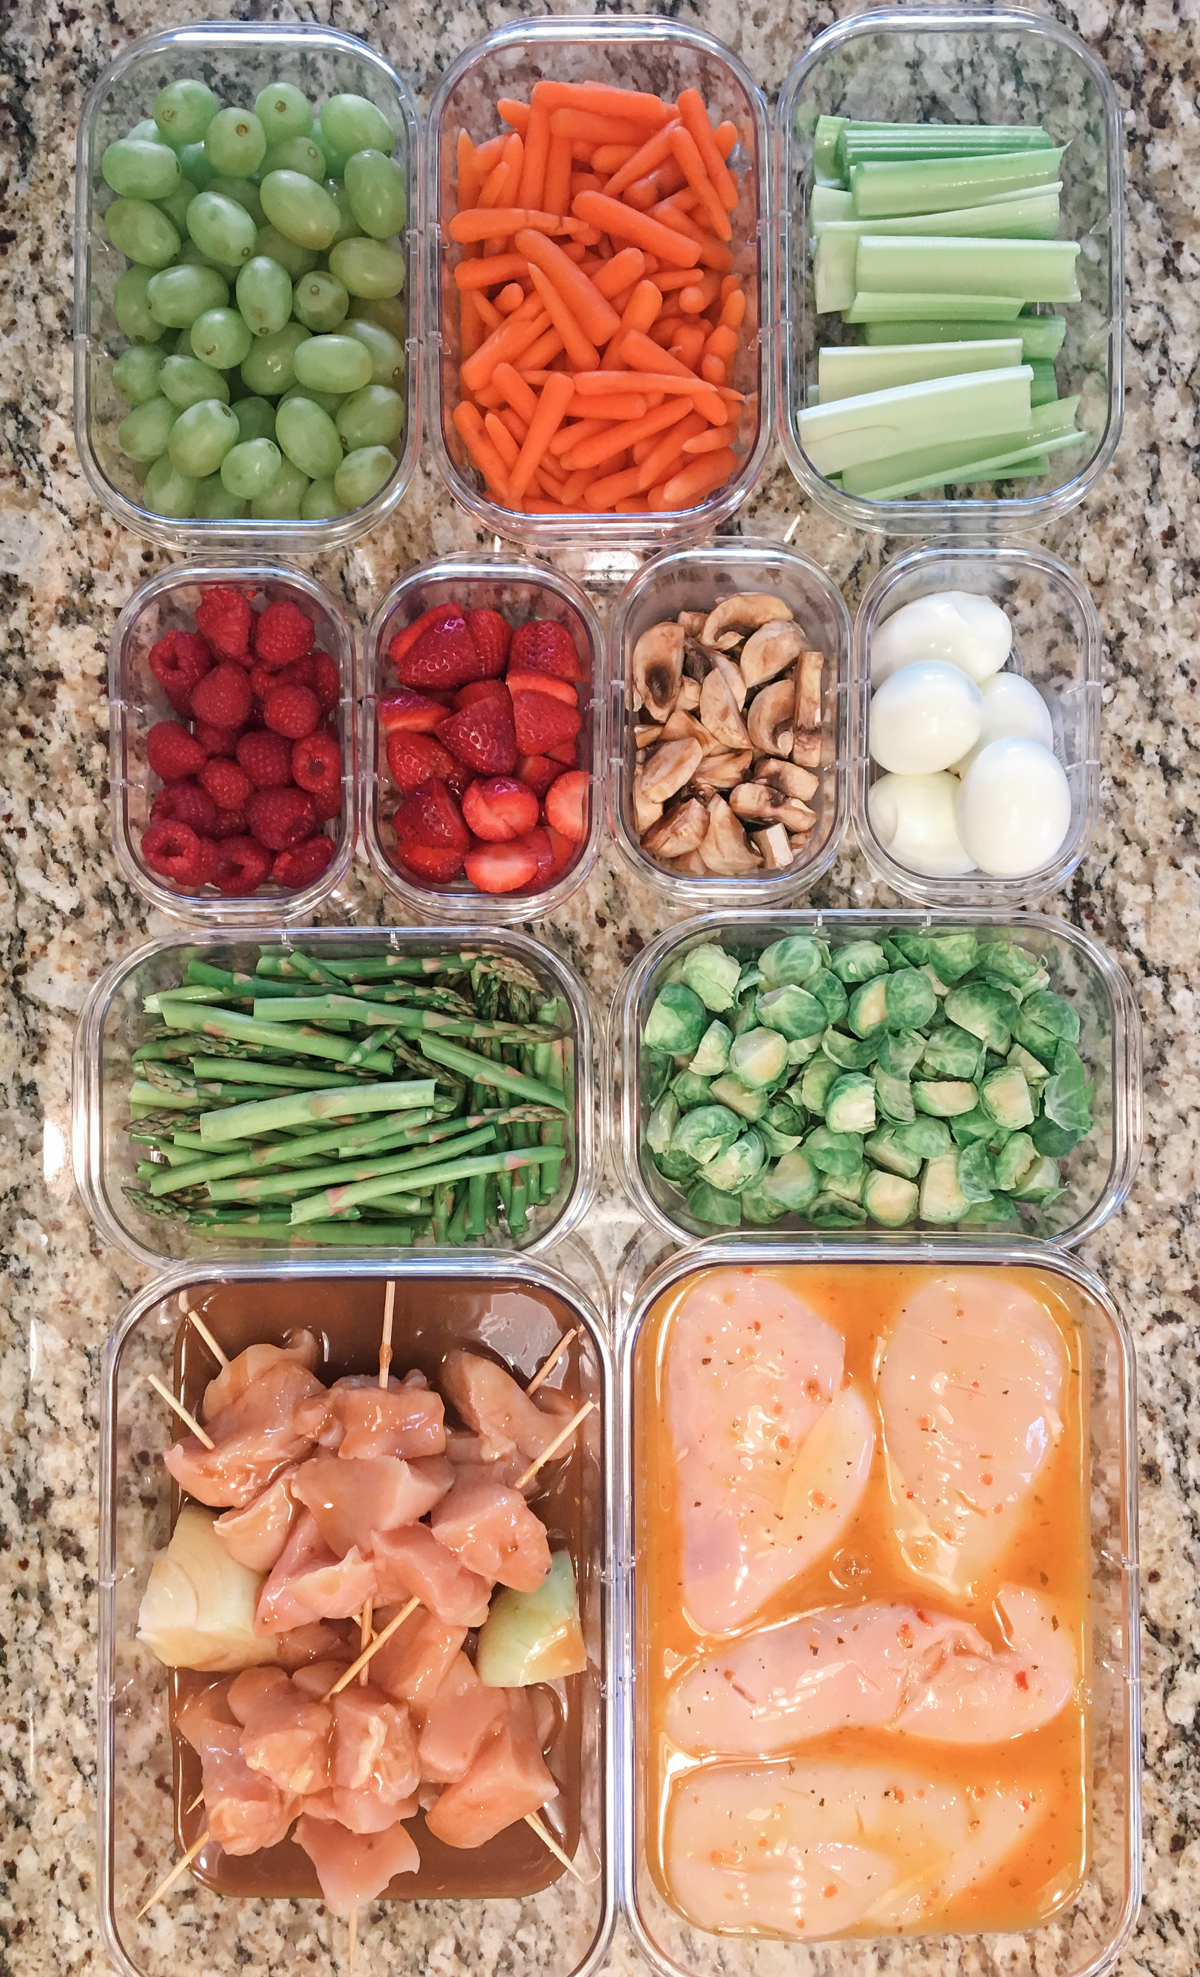 Clean Eating, Meal Prep for clean eating, Meal planning, Healthy Dinners - Clean Eating Prep by popular lifestyle blogger, Cristin Cooper